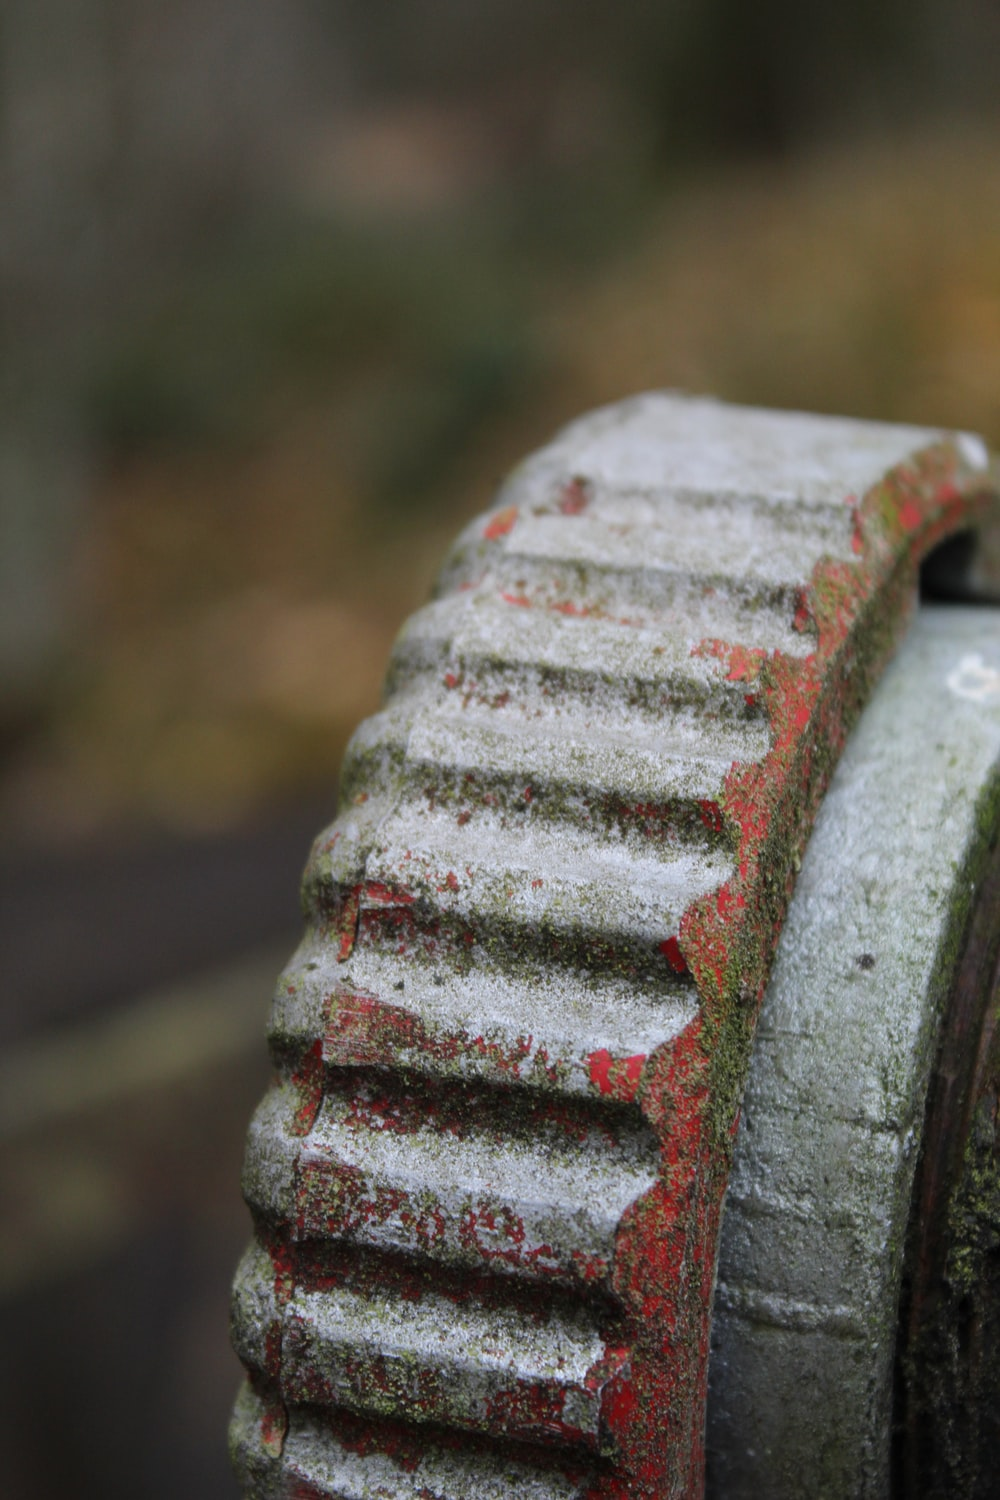 close-up photography of gray gear